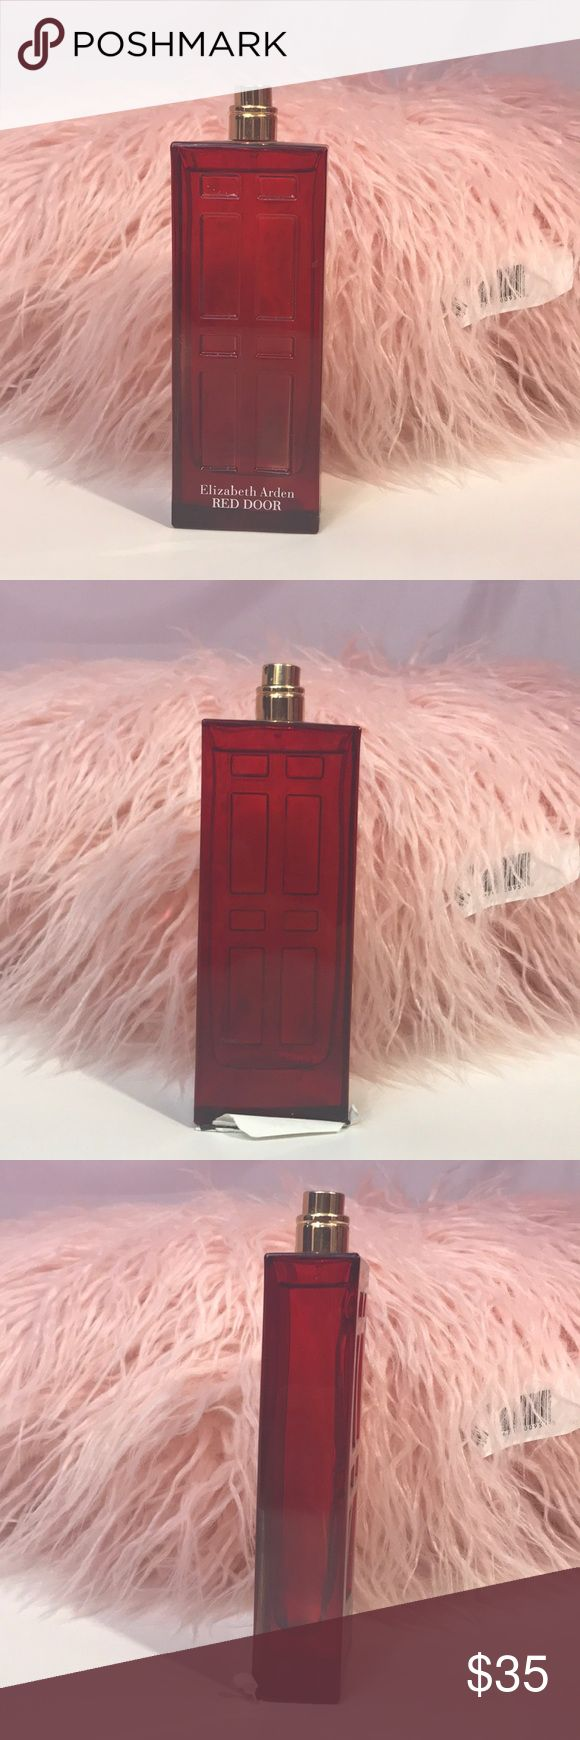 Elizabeth Arden red door Perfume Unlock your scenes with Elizabeth Arden's Red Door Perfume. This Perfume is 3.3 oz and is authentic... I have a few of these and all have some type of paper,glue on the bottom   This post has been cross posted . No trades and best offer accepted Elizabeth Arden Accessories